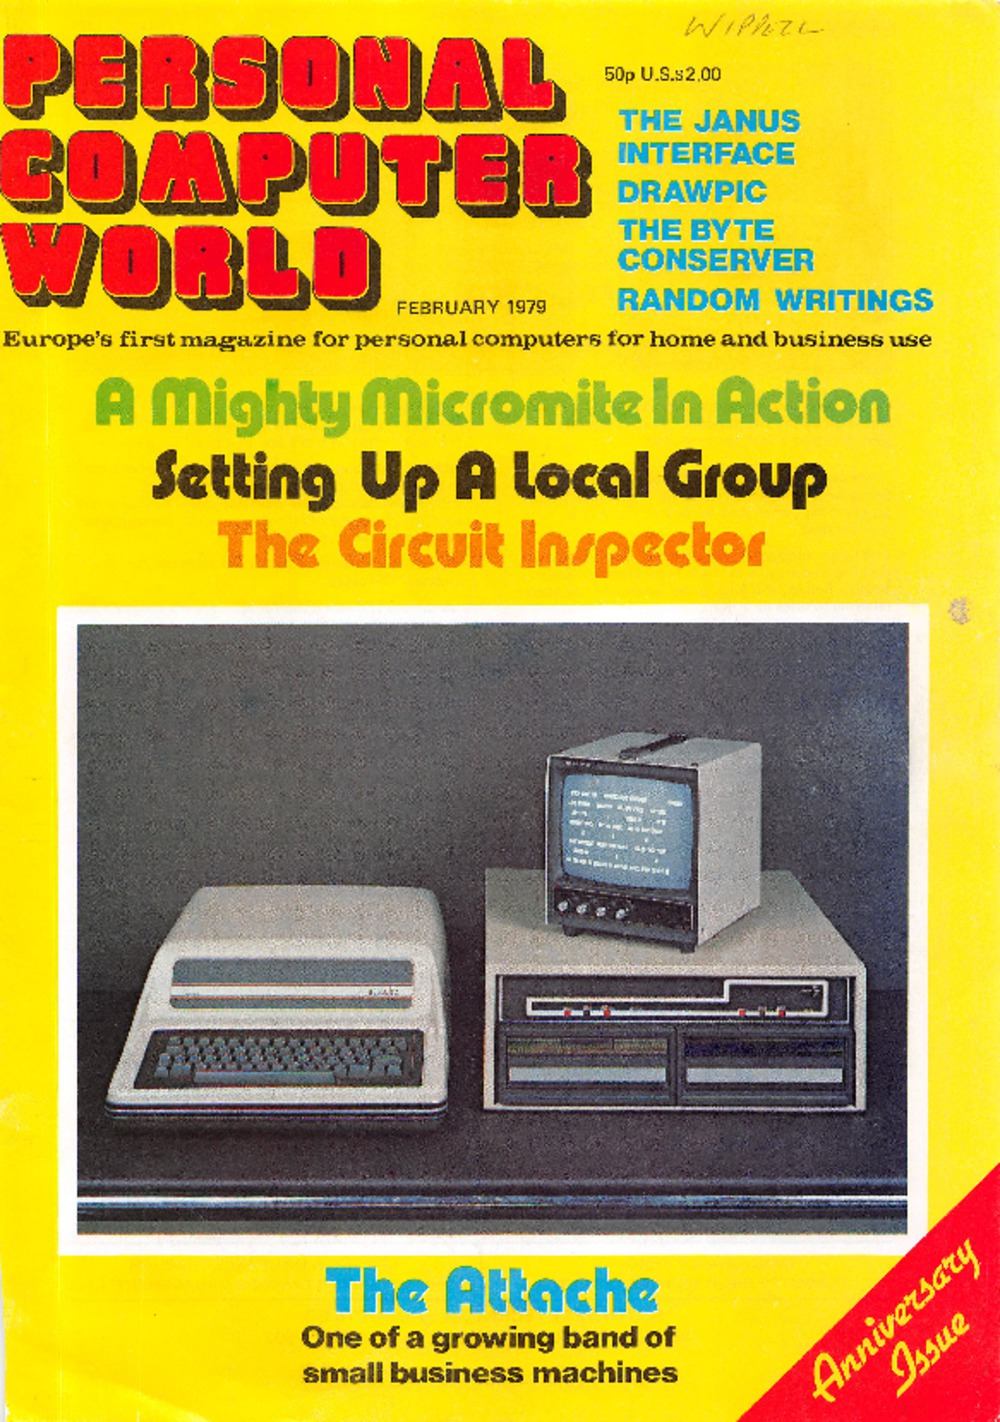 Article: Personal Computer World - February 1979